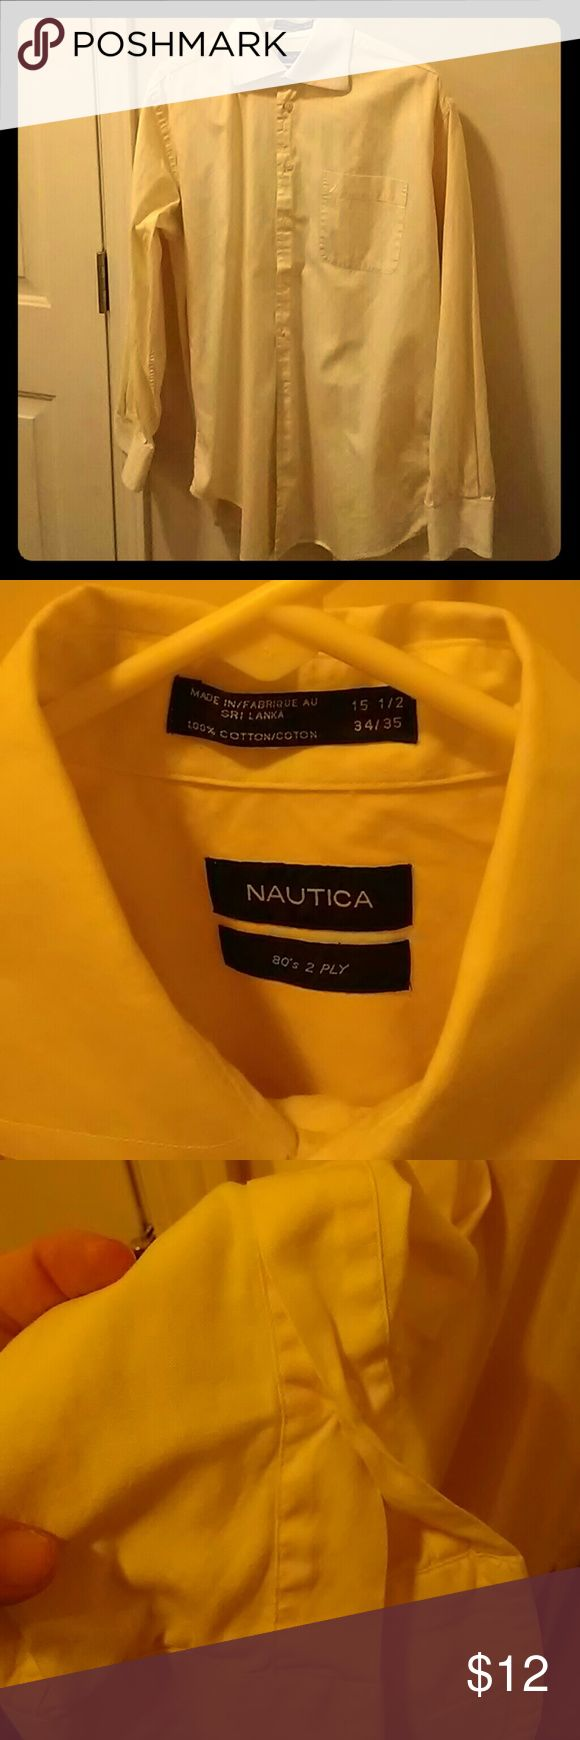 Nautica 80's 2 Ply Button down Yellow dress shirt with white collar.  15 1/2 34/35 Small stain on inside of cuff on arm, shown in picture. Very little wear, quality feeling shirt. Nautica Shirts Dress Shirts